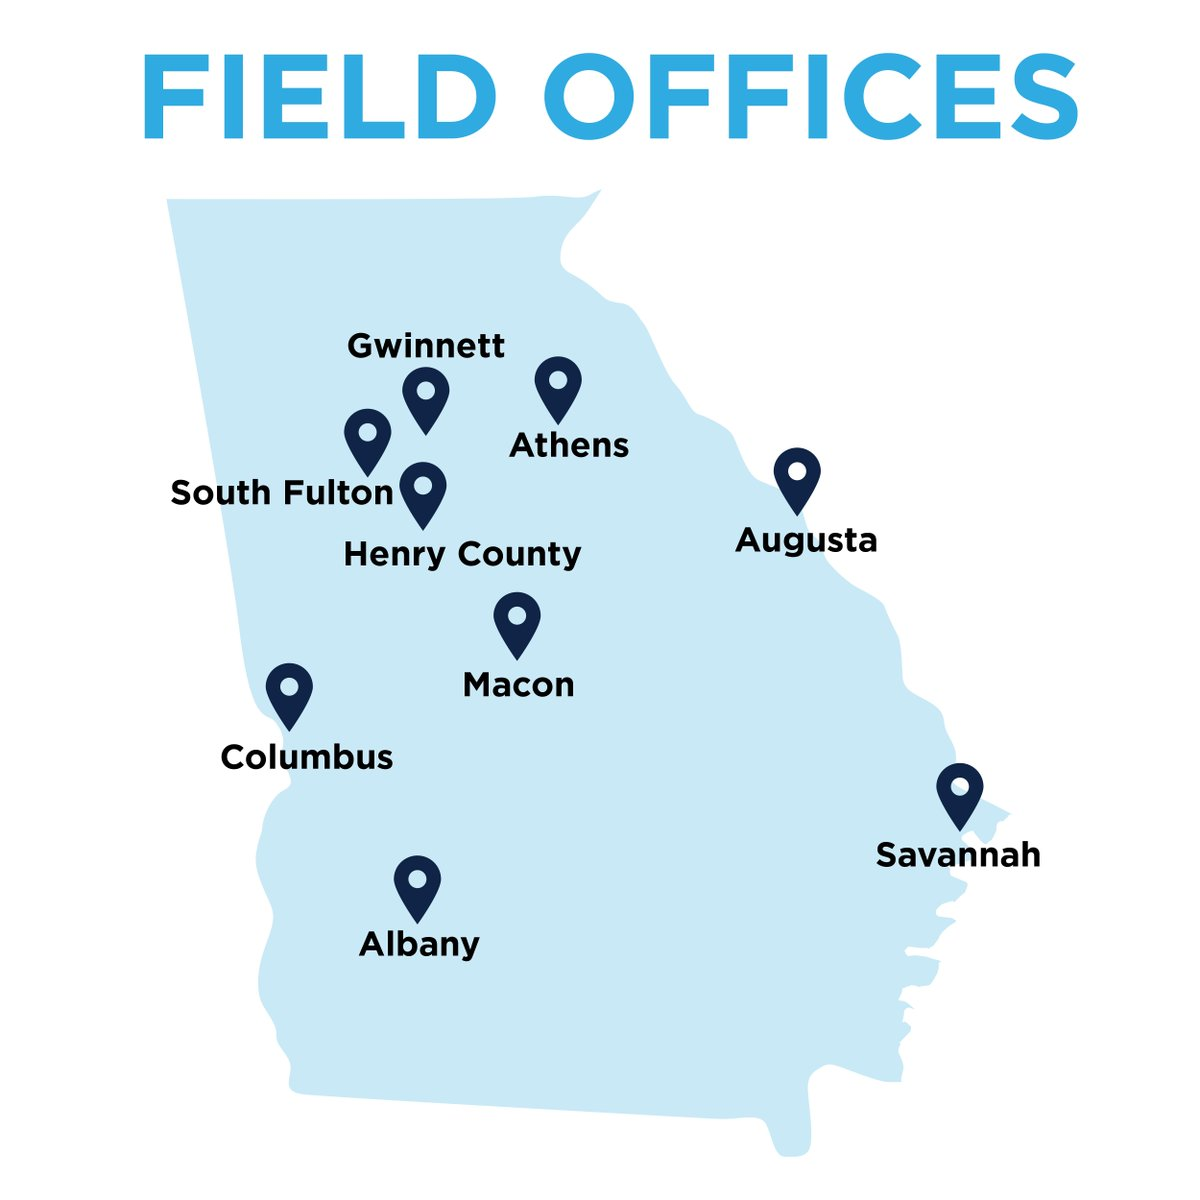 Get involved today, find a field office near you: https://t.co/umn3YudKan #NewDayGA #gadems https://t.co/EL5zDHQS9T